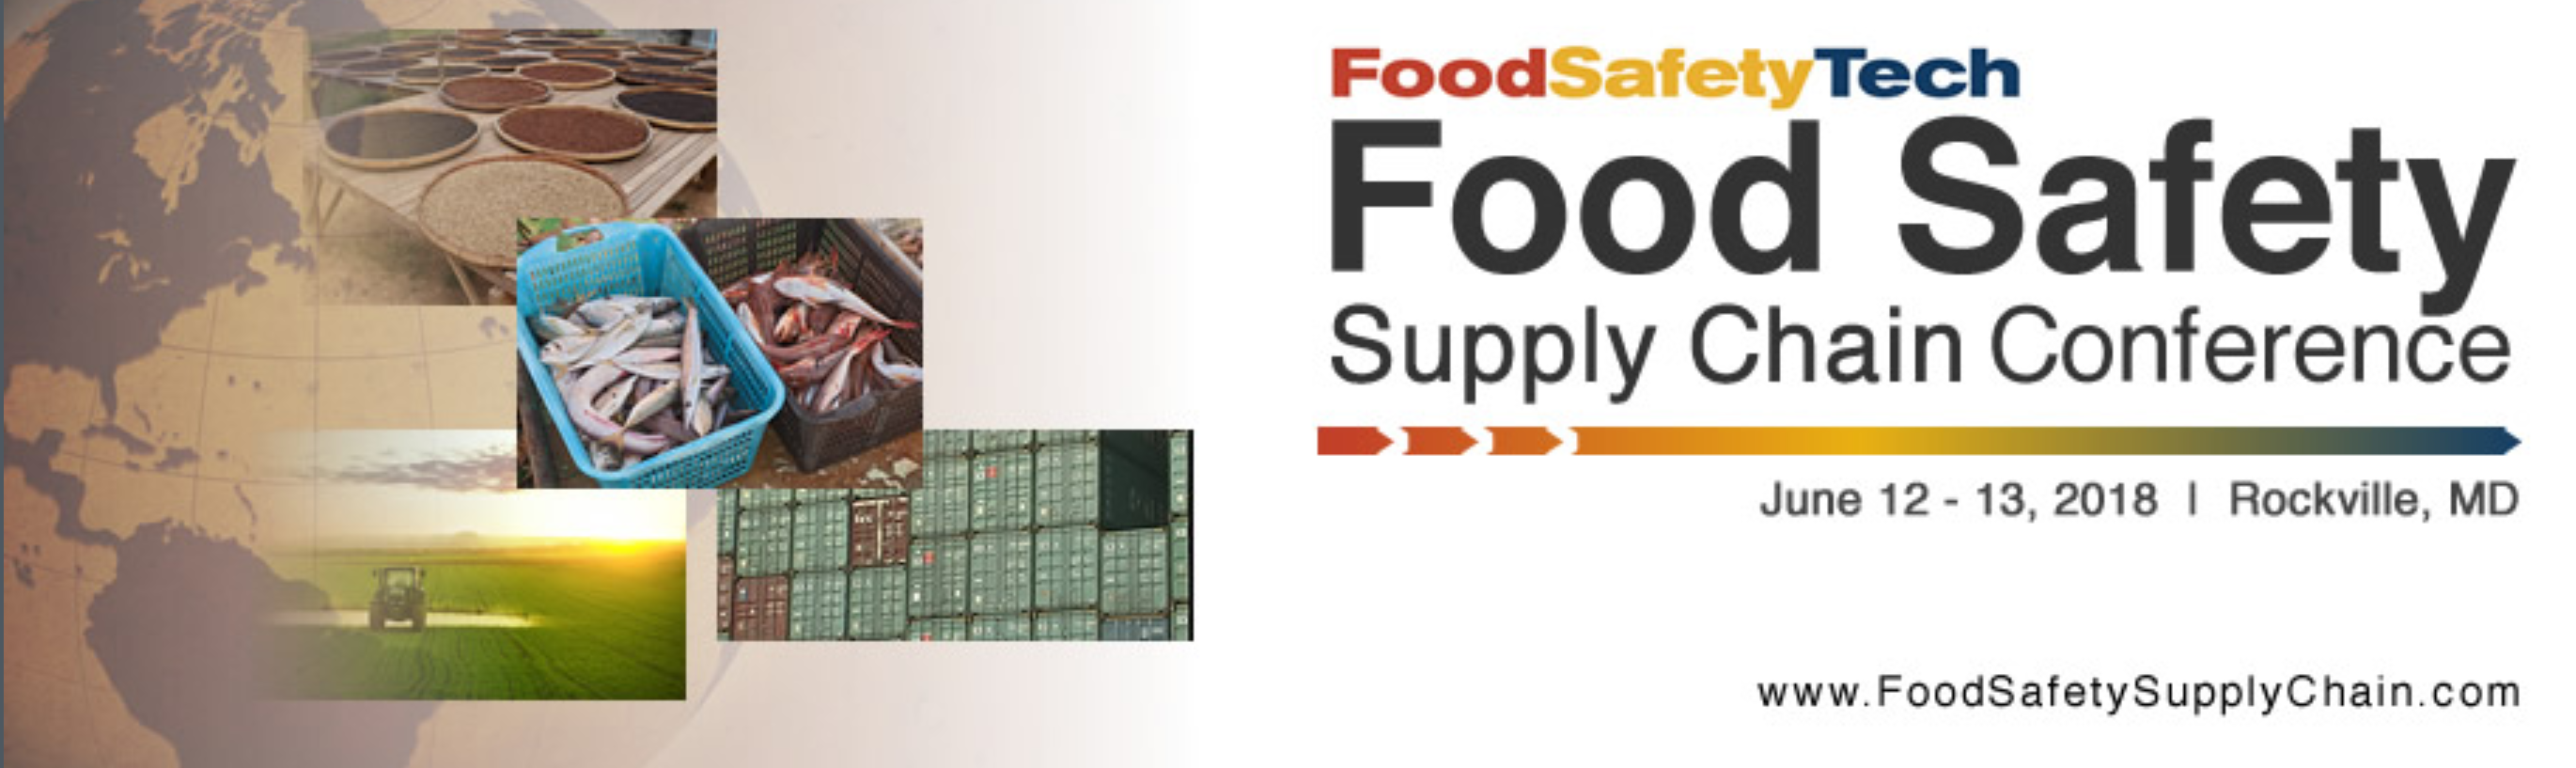 FoodLogiQ Joins with Partners and Customers to Present at 2018 Food Safety Supply Chain Conference